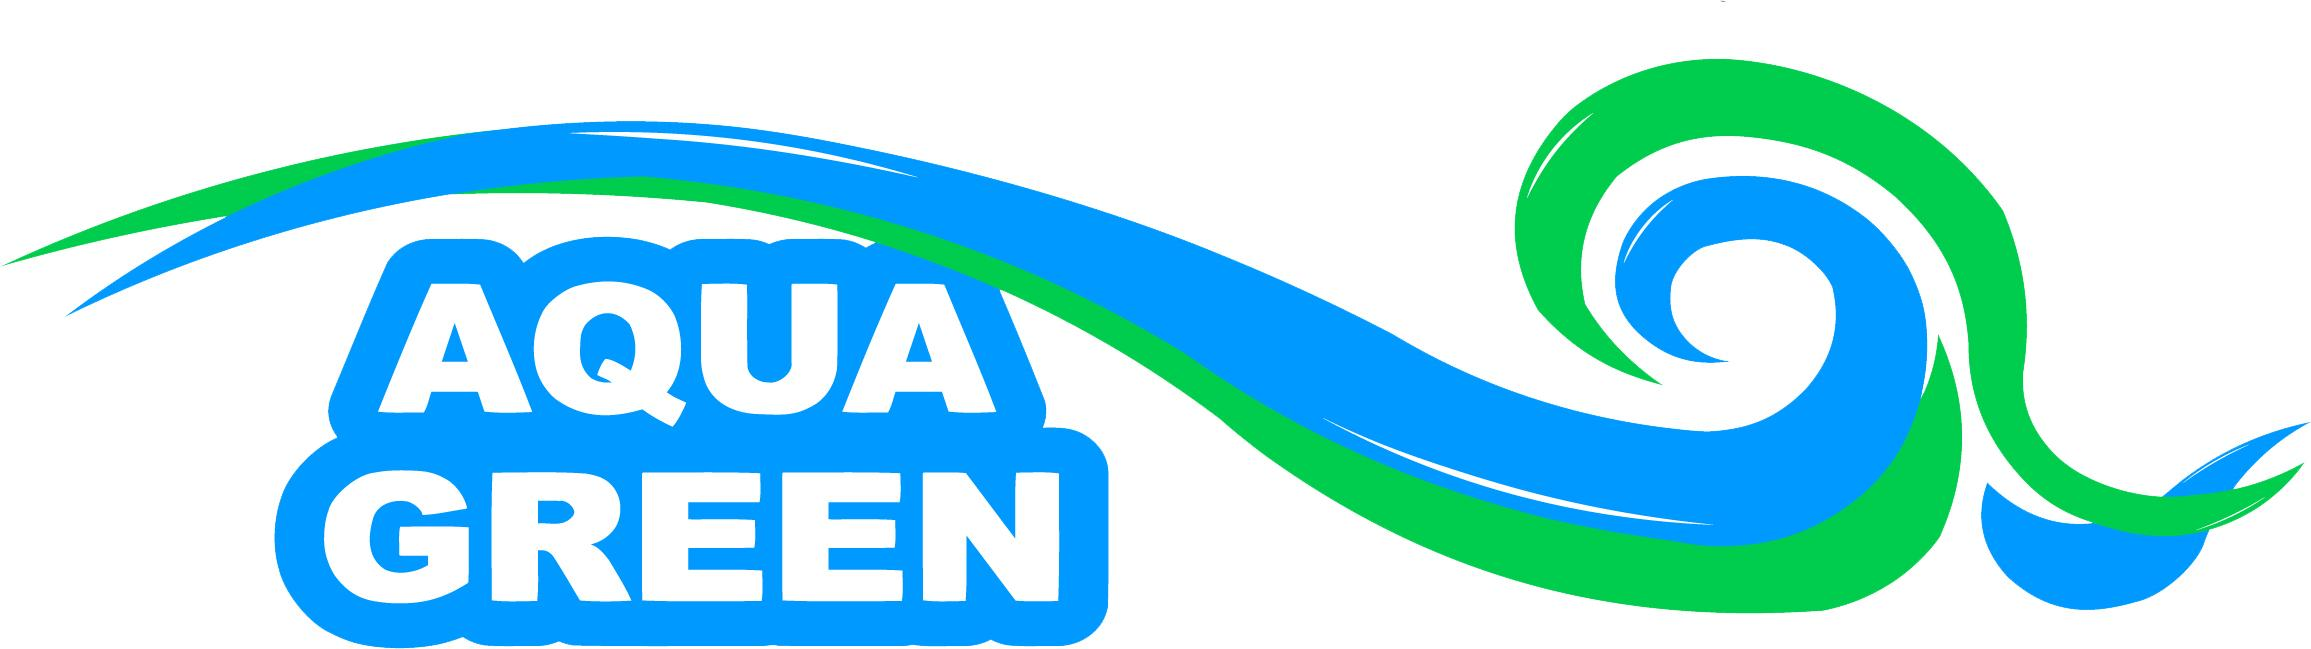 aquagreen logo_1_13_1